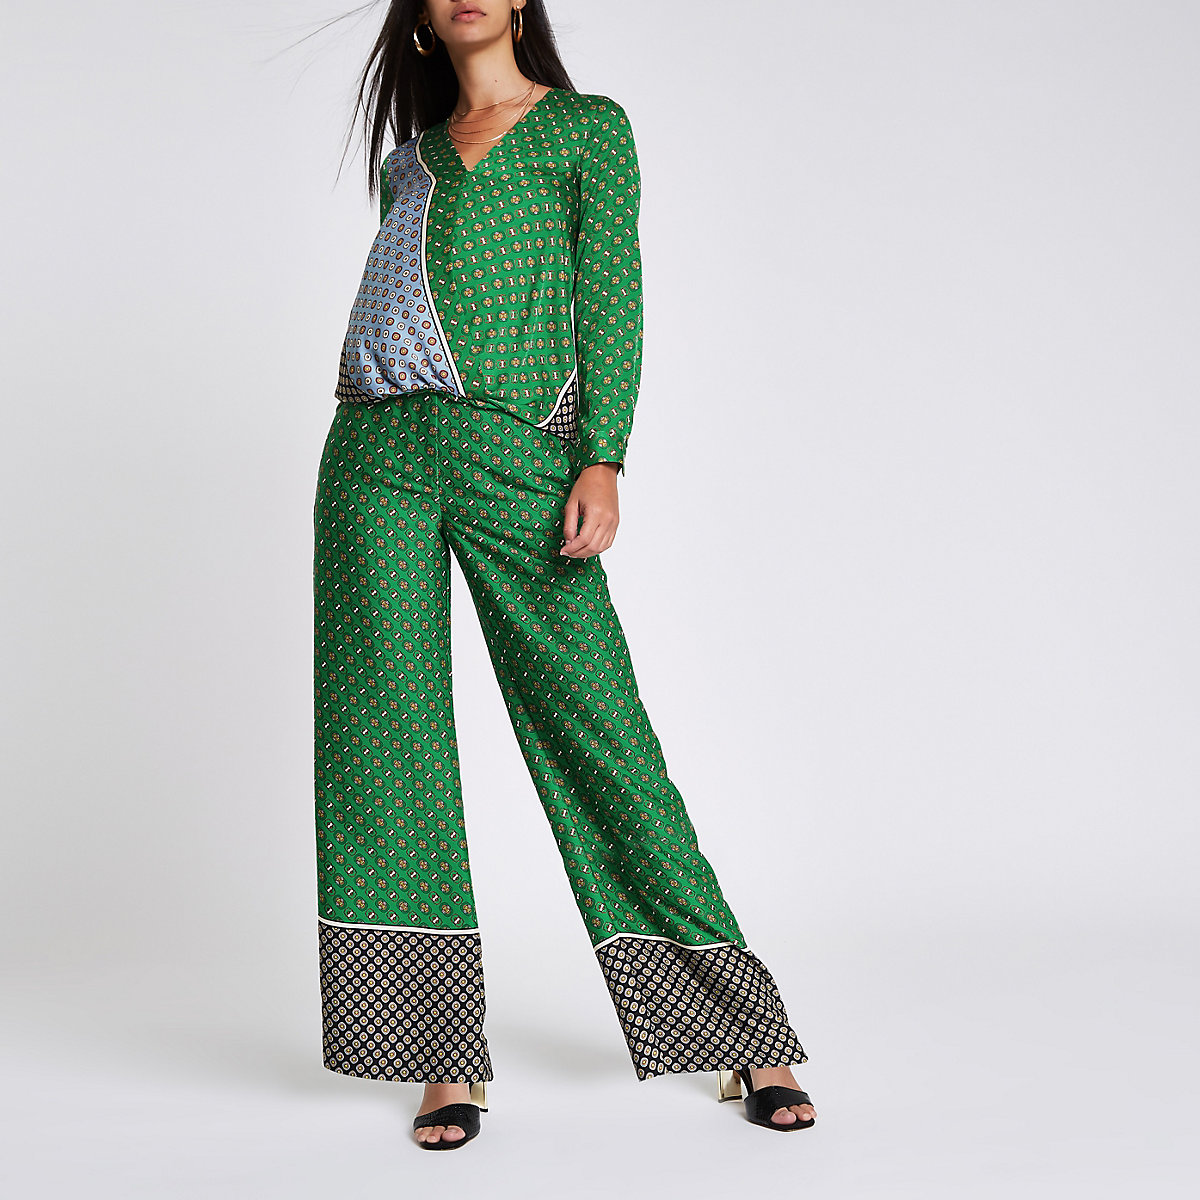 Green tile print wide leg pants